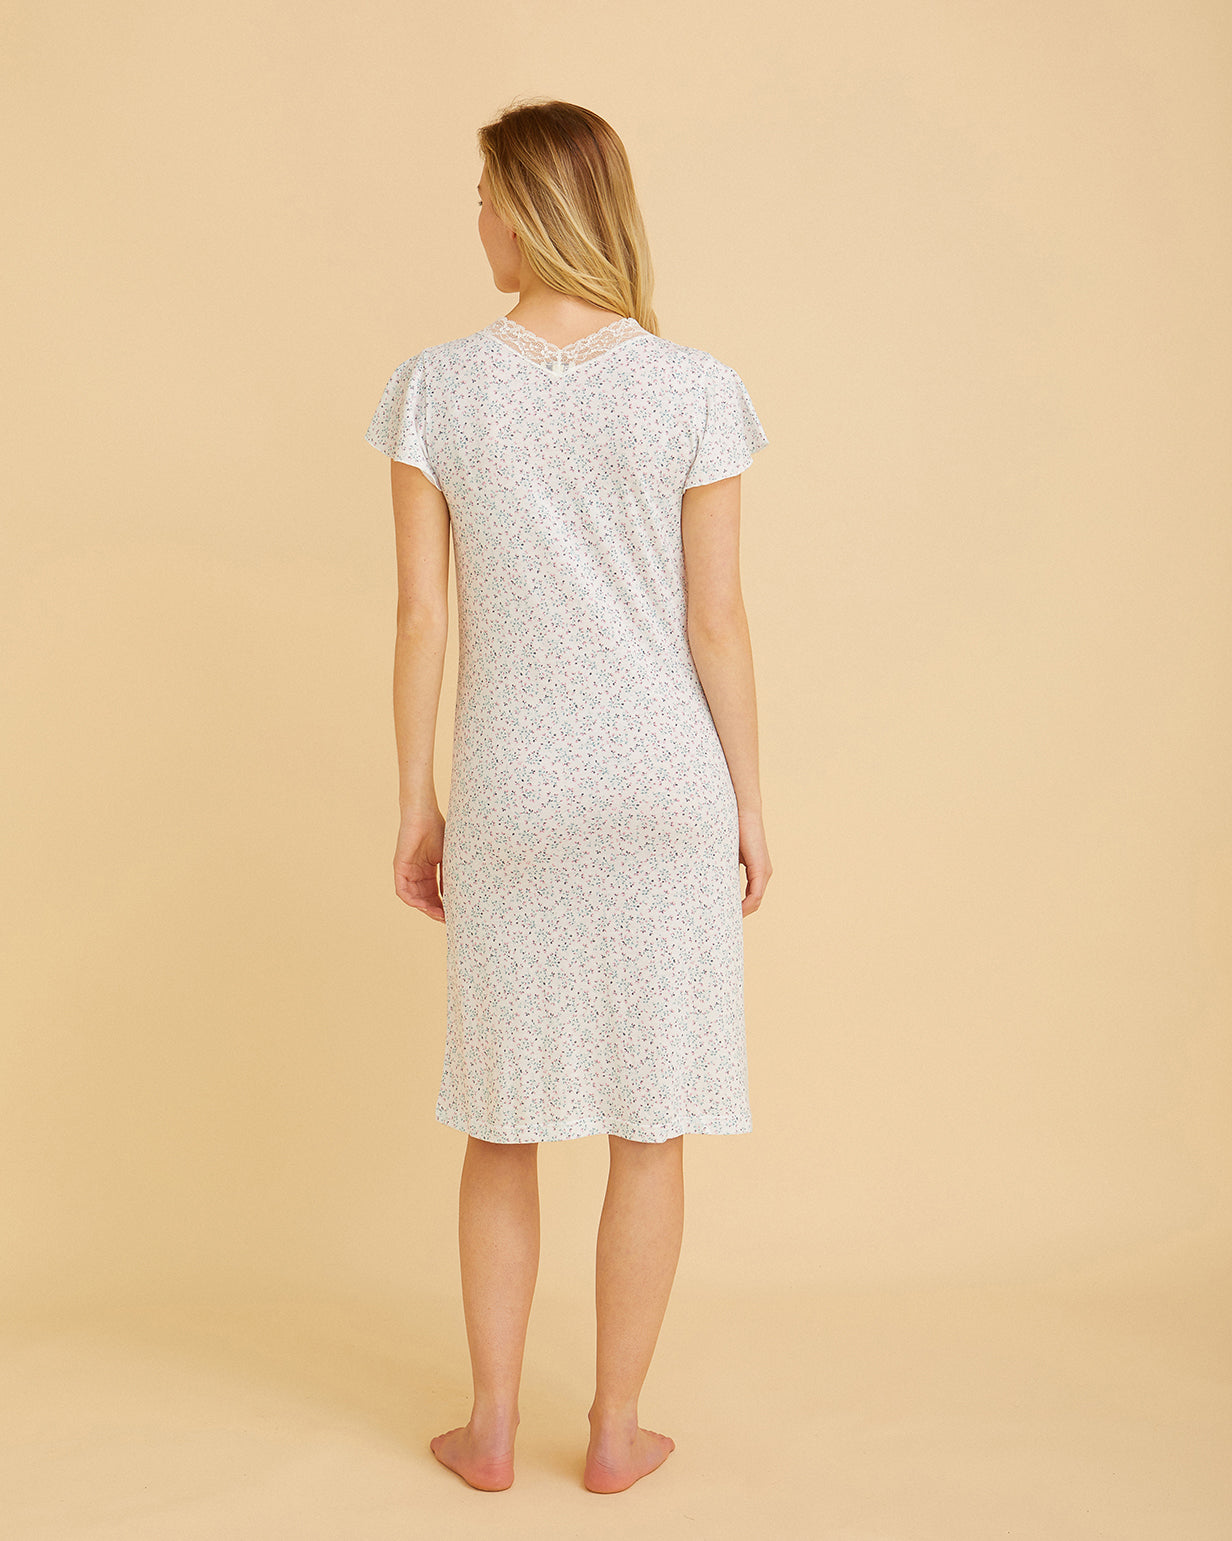 Women's Jersey Short Sleeve Nightdress With Lace Detail Pink Floral | Bonsoir of London